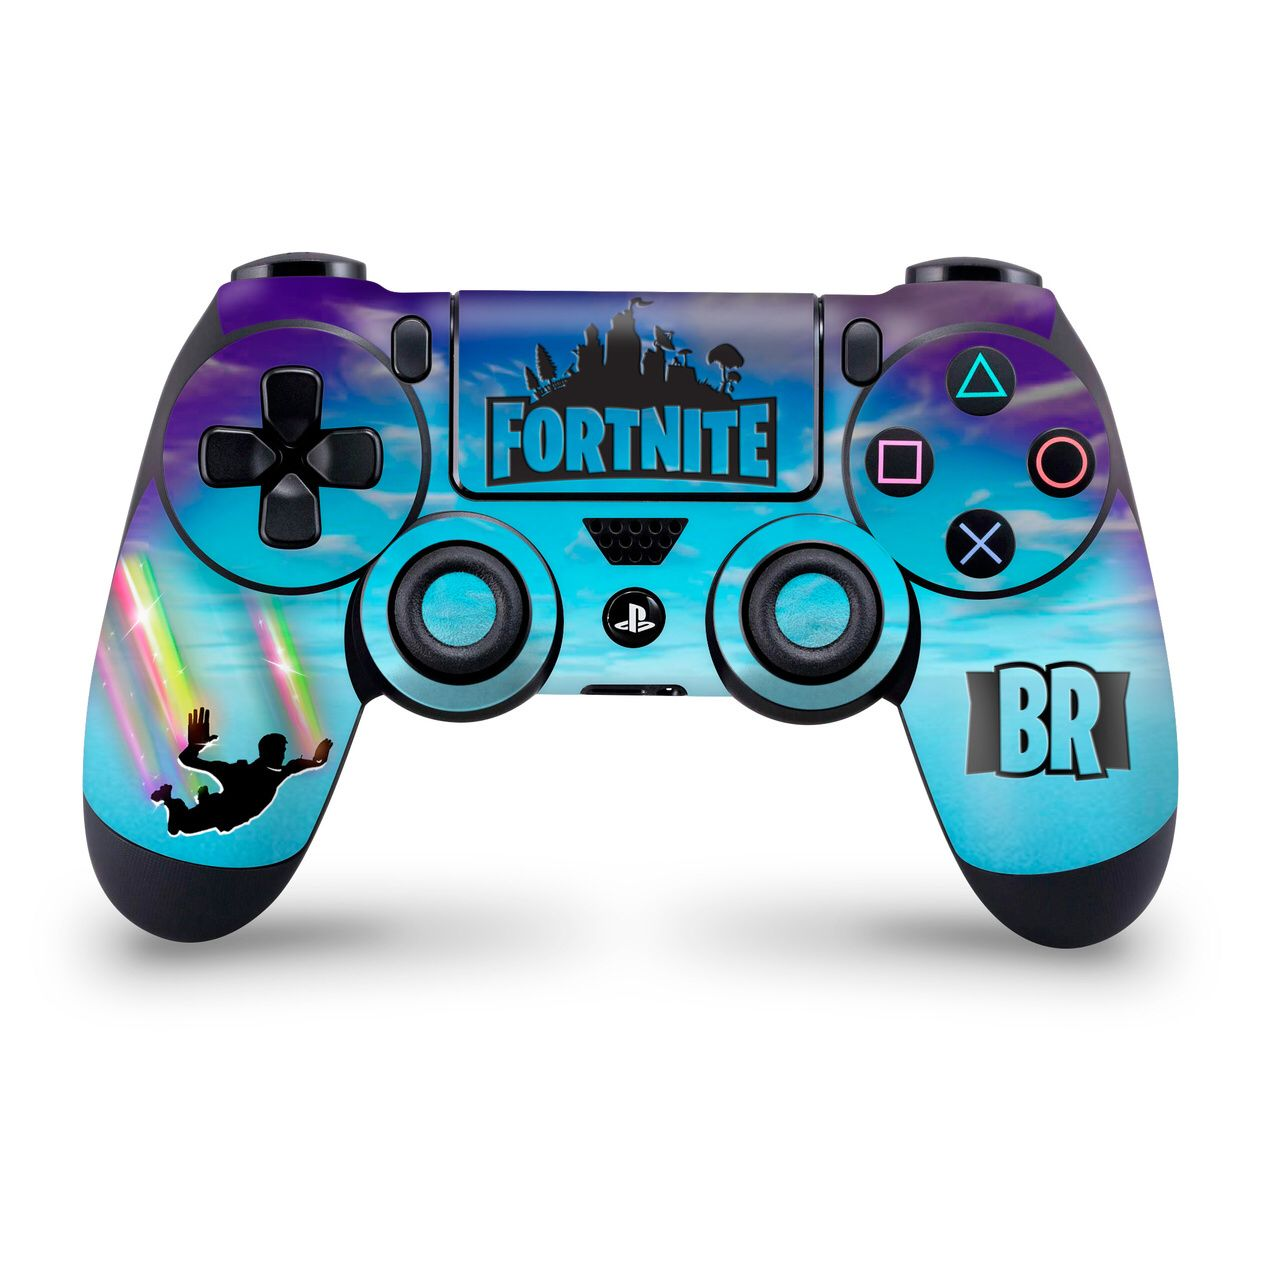 Idea By Gaming Club On Playstation Controller